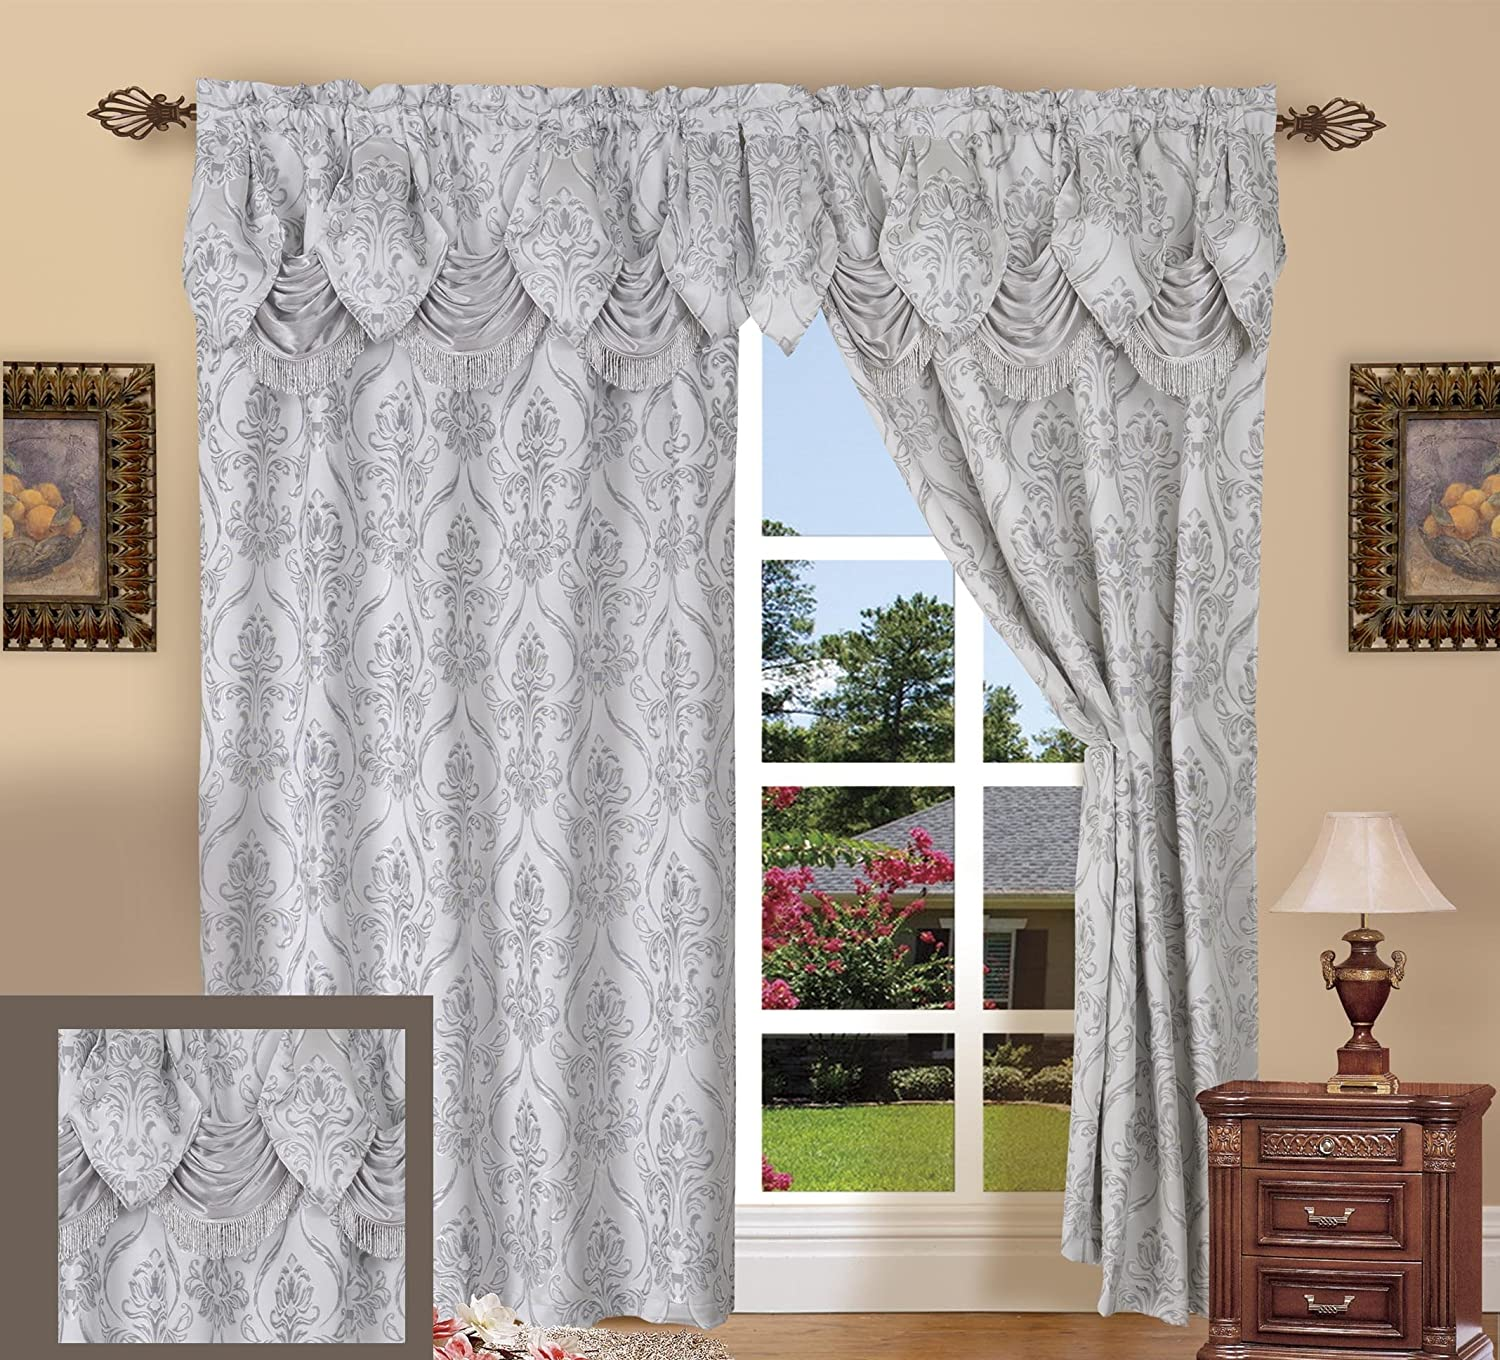 Elegance Linen Luxury Jacquard Curtain Panel Set with Attached Valance Set of 2 Silver